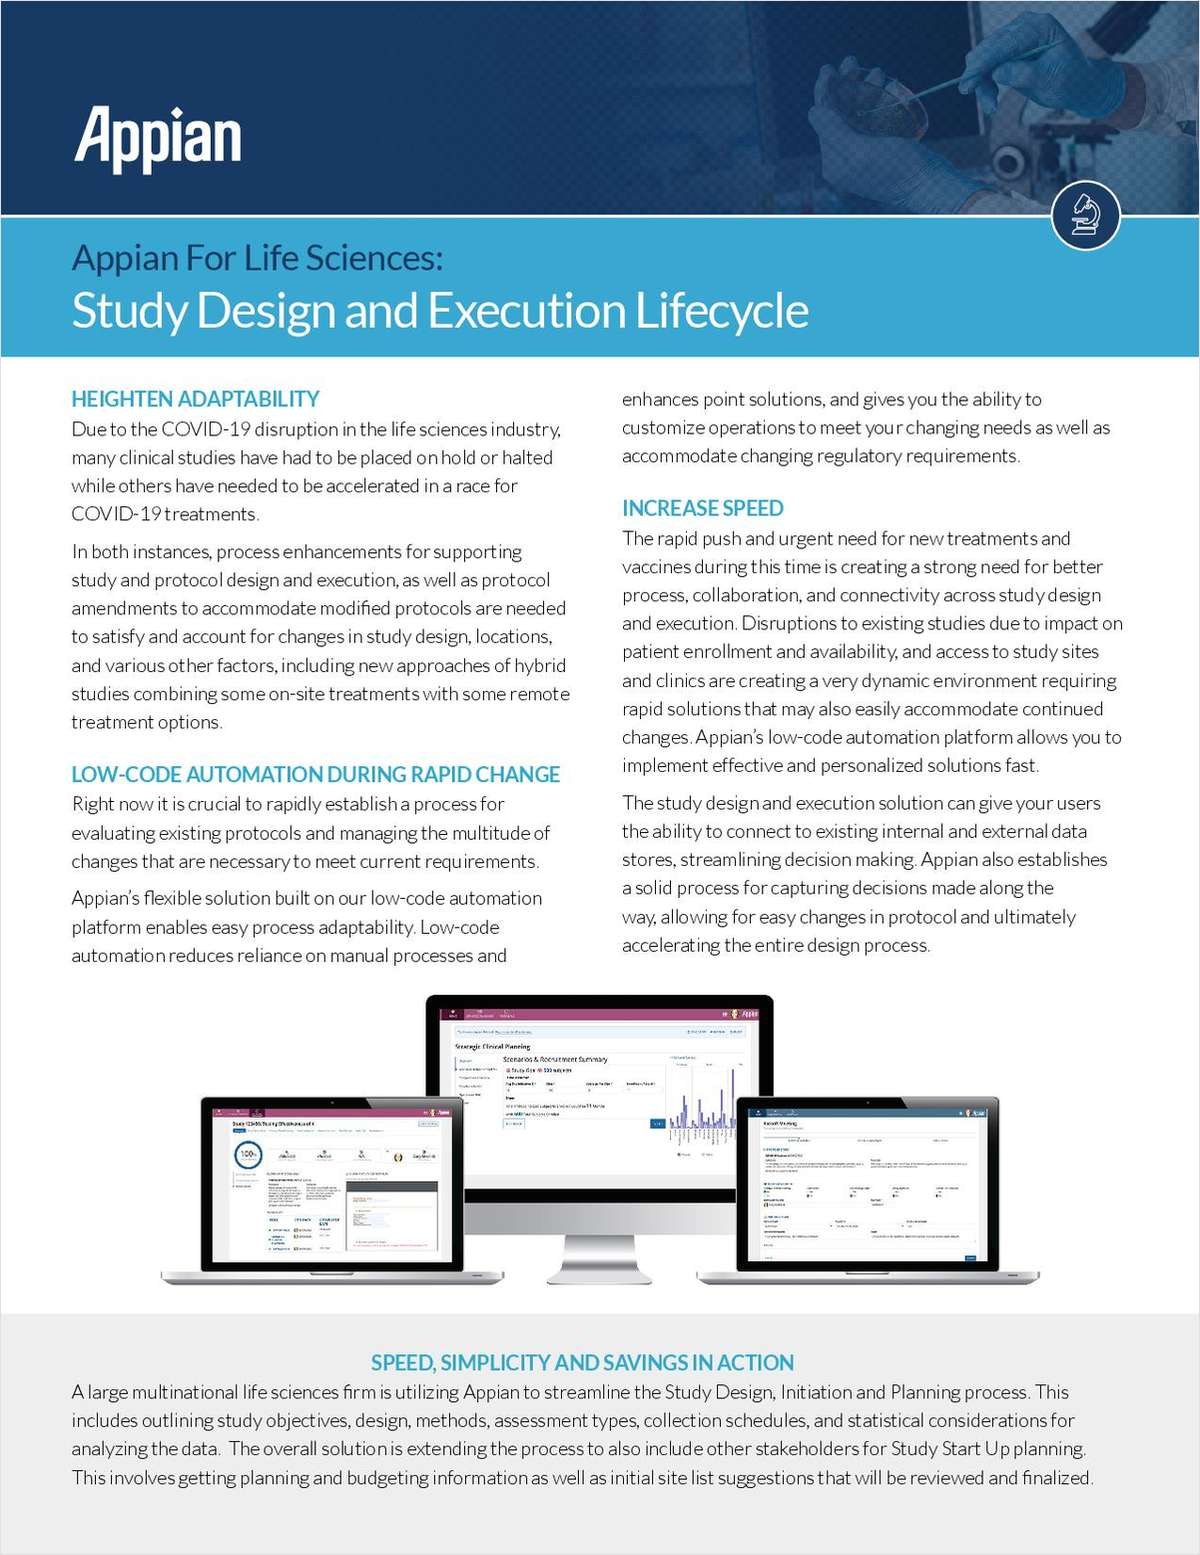 Appian for Life Sciences: Study Design and Execution Lifecycle